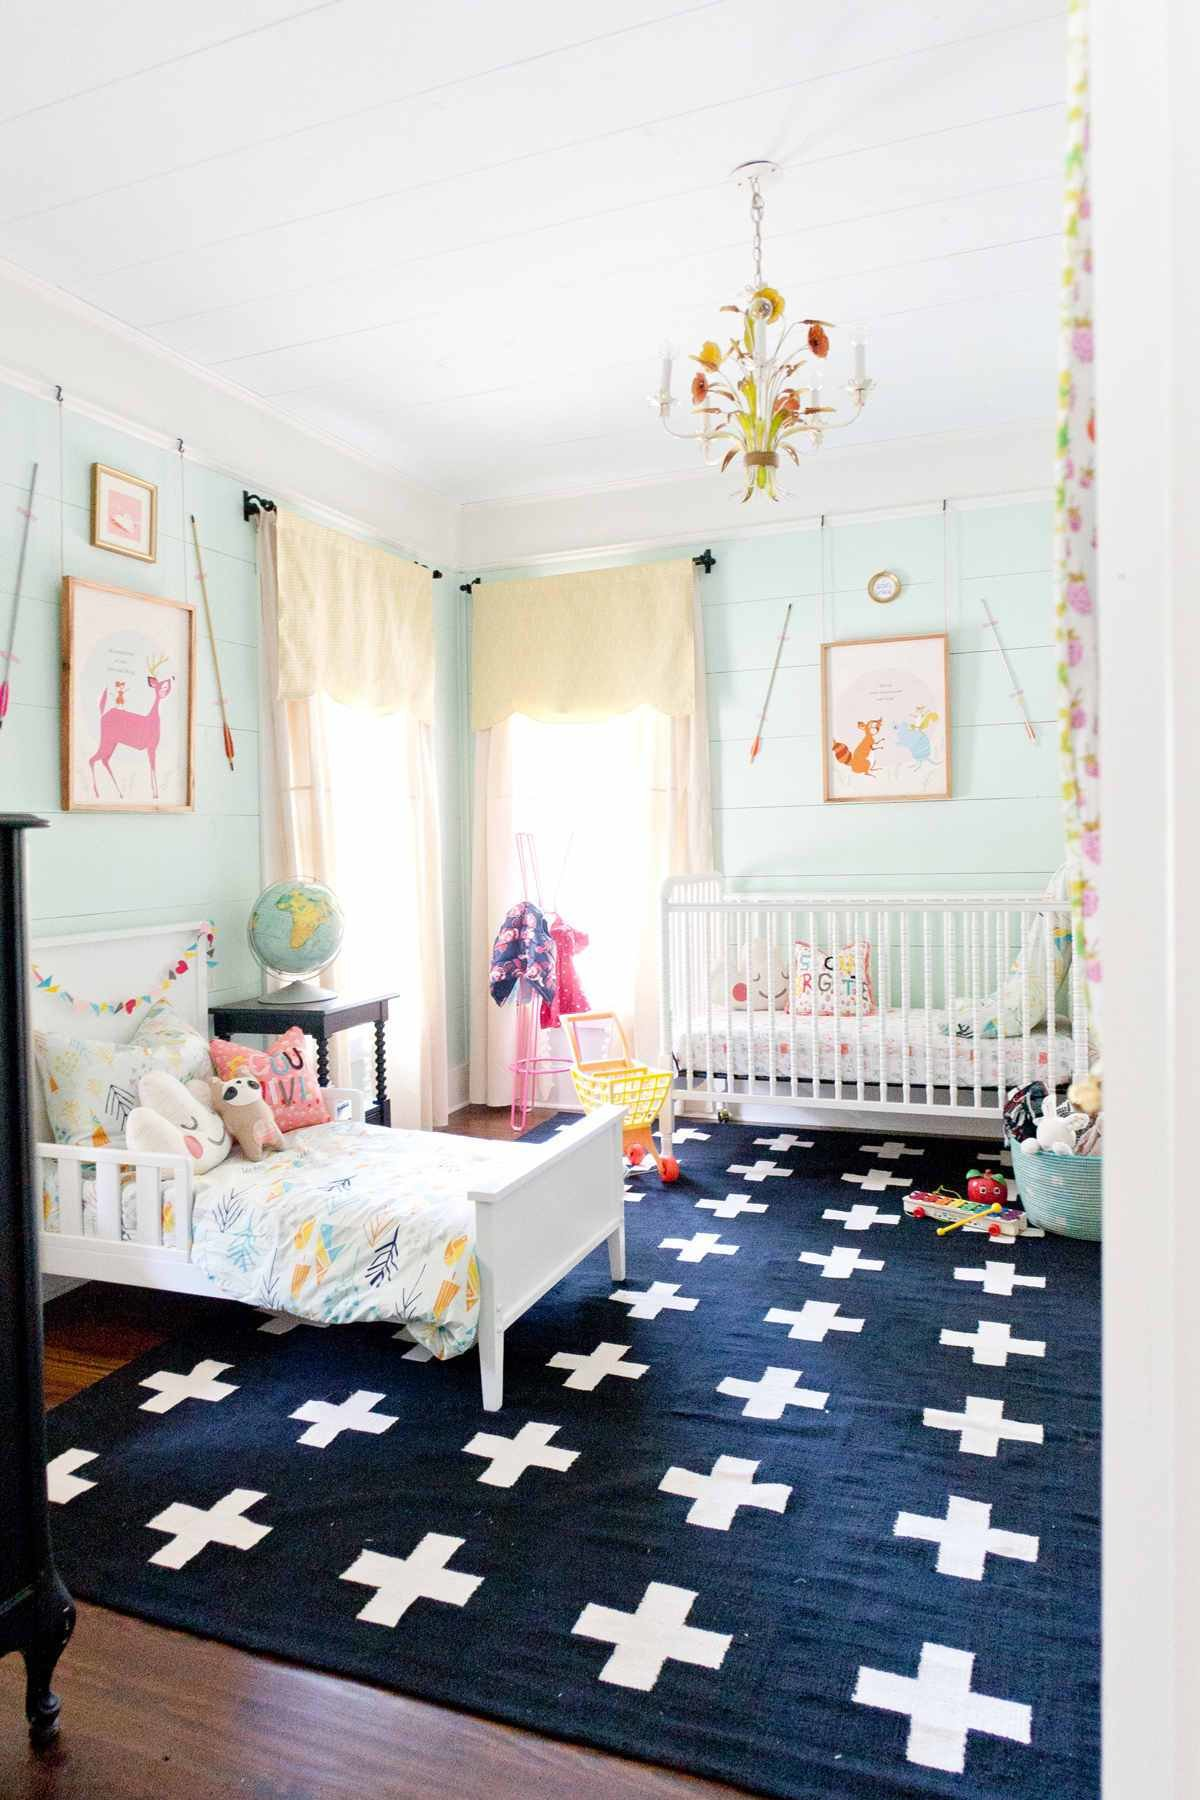 Best Shared Room Inspiration Lay Baby Lay Lay Baby Lay With Pictures